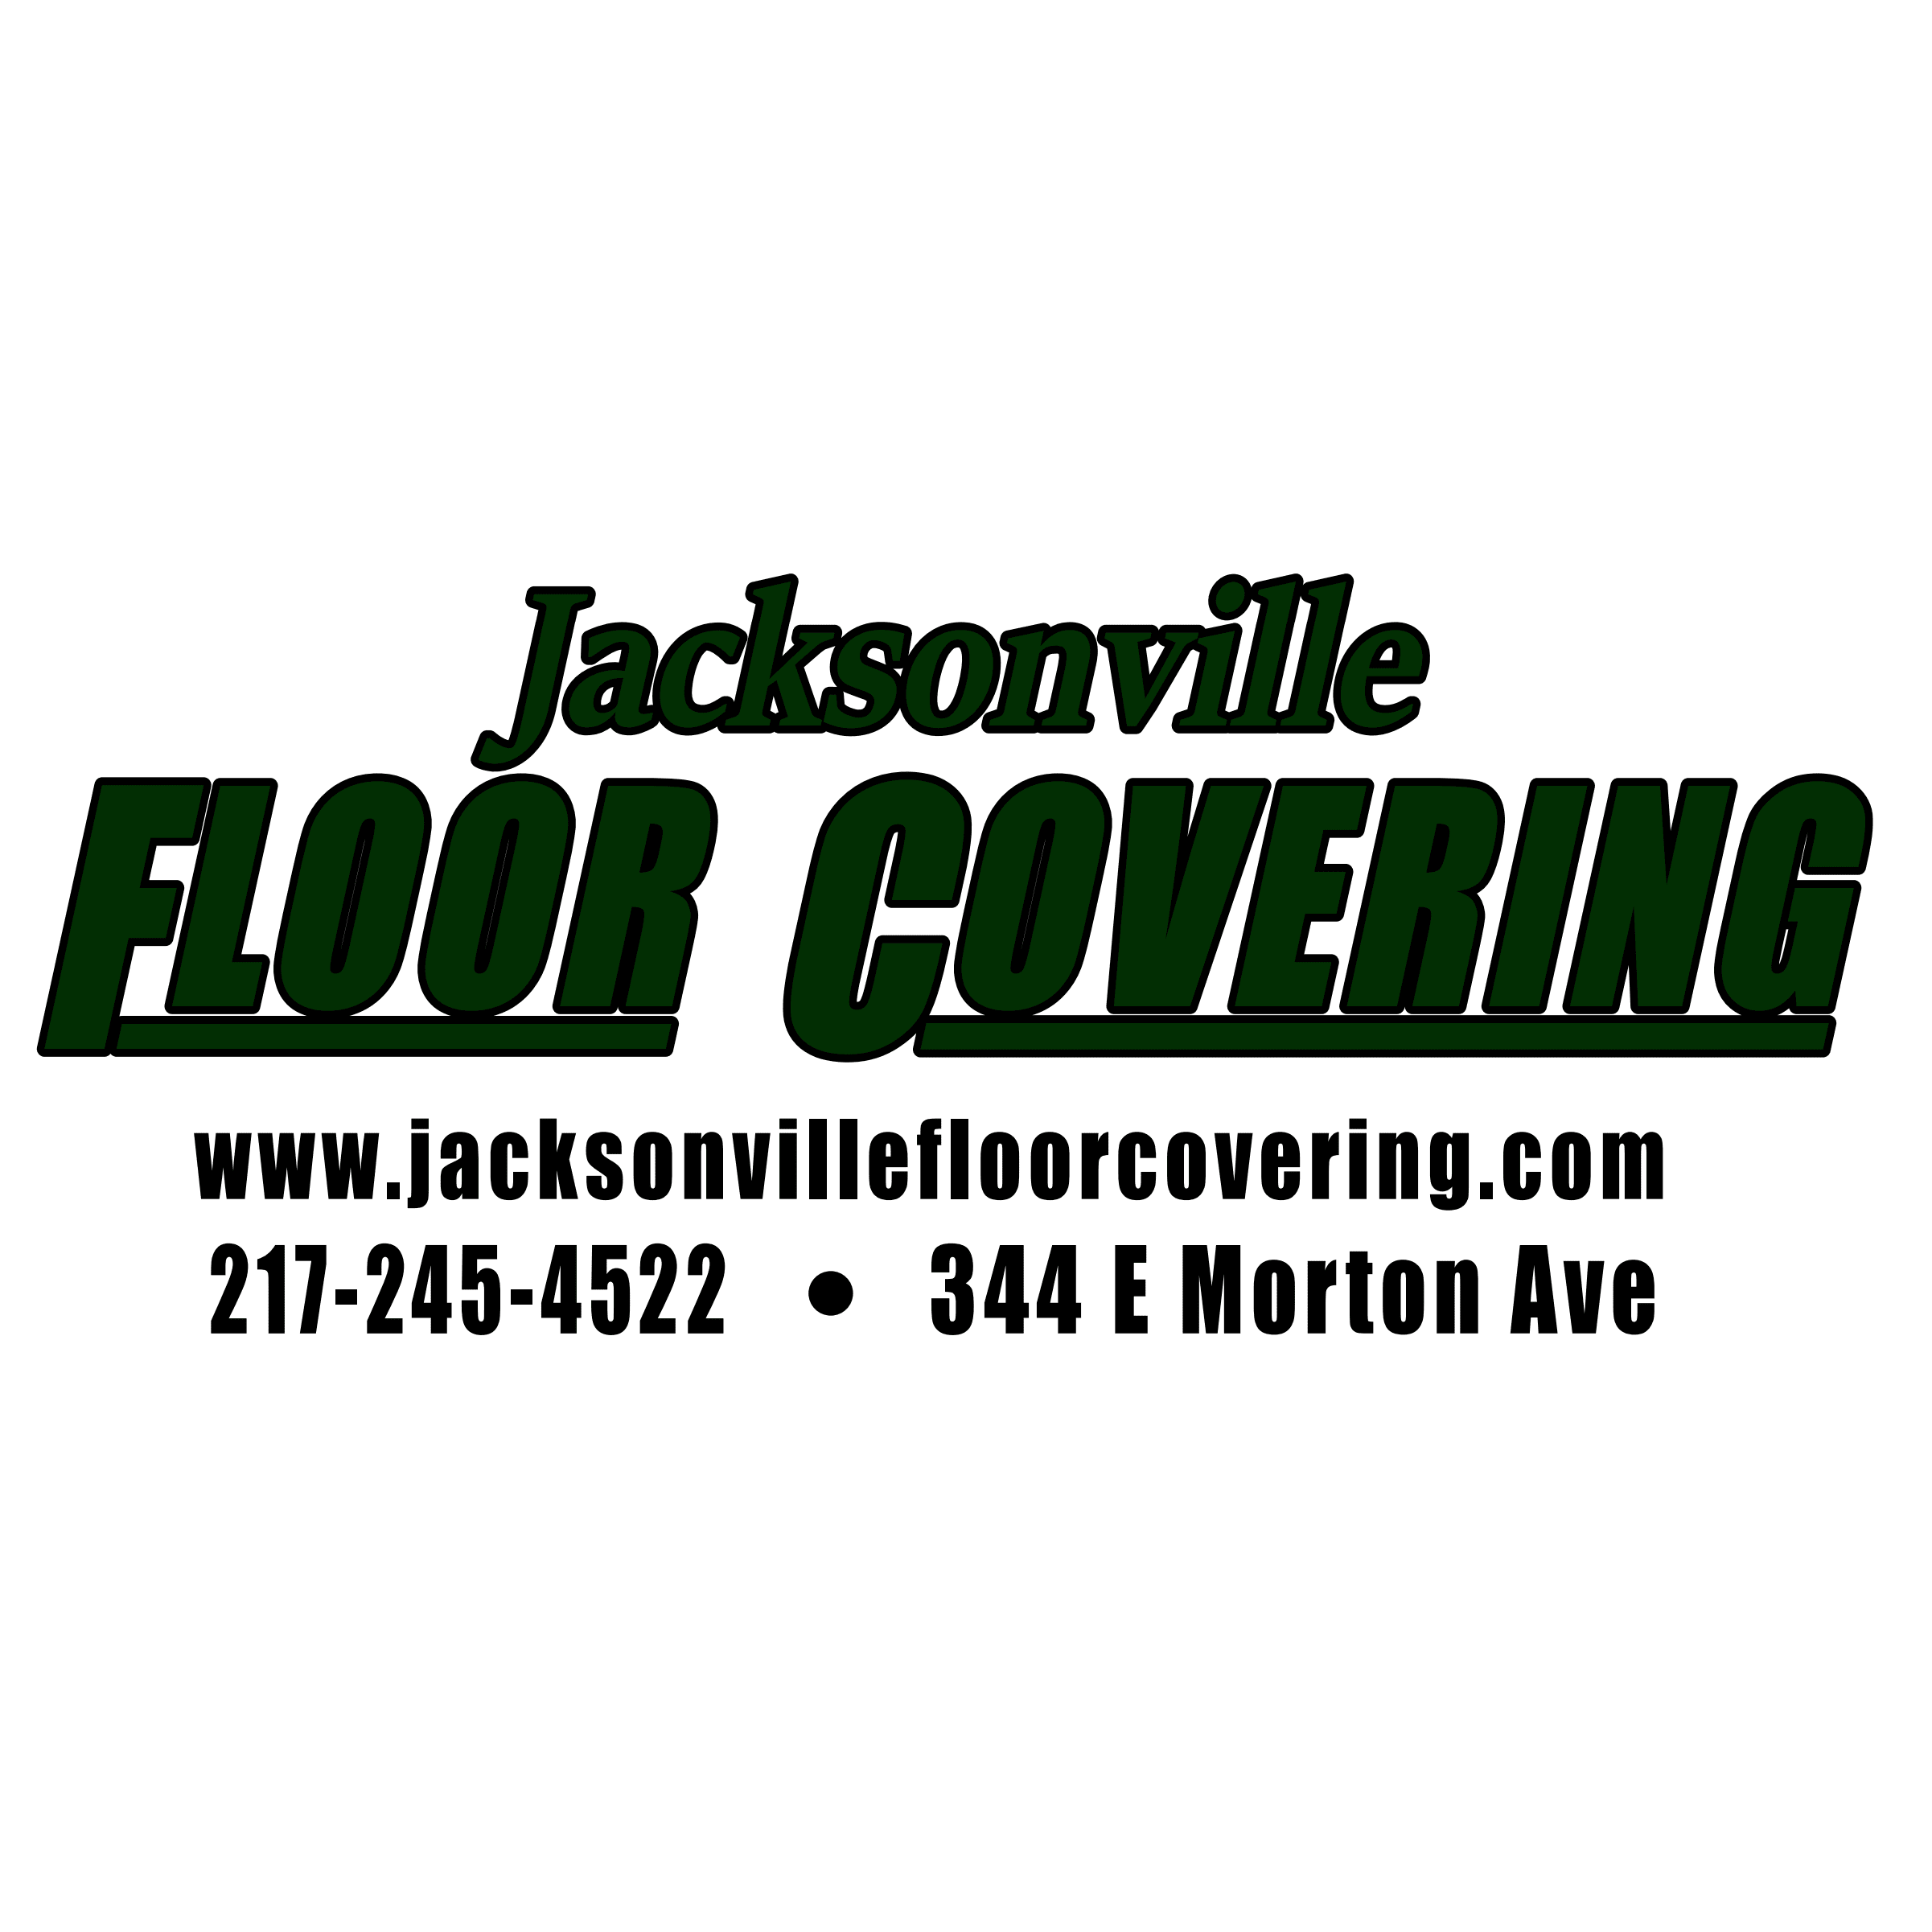 Jacksonville Floor Covering